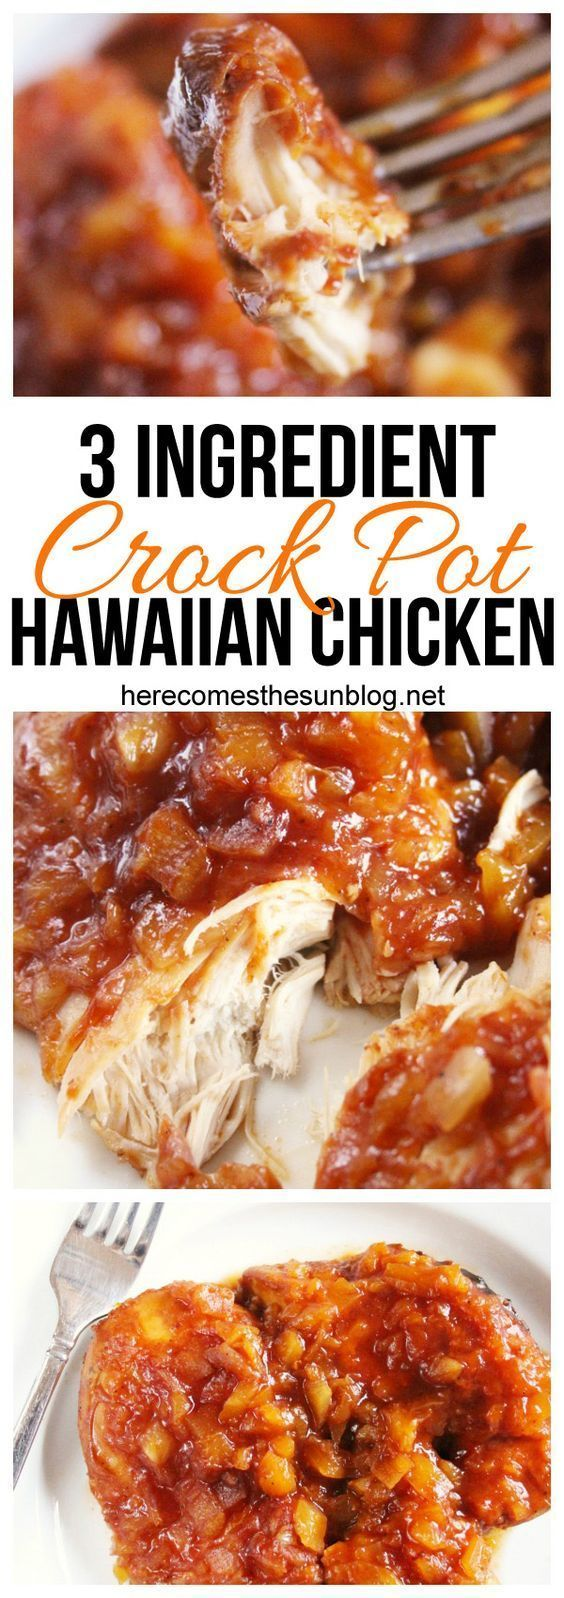 Make this delicious Crock Pot Hawaiian Chicken with only 3 ingredients!